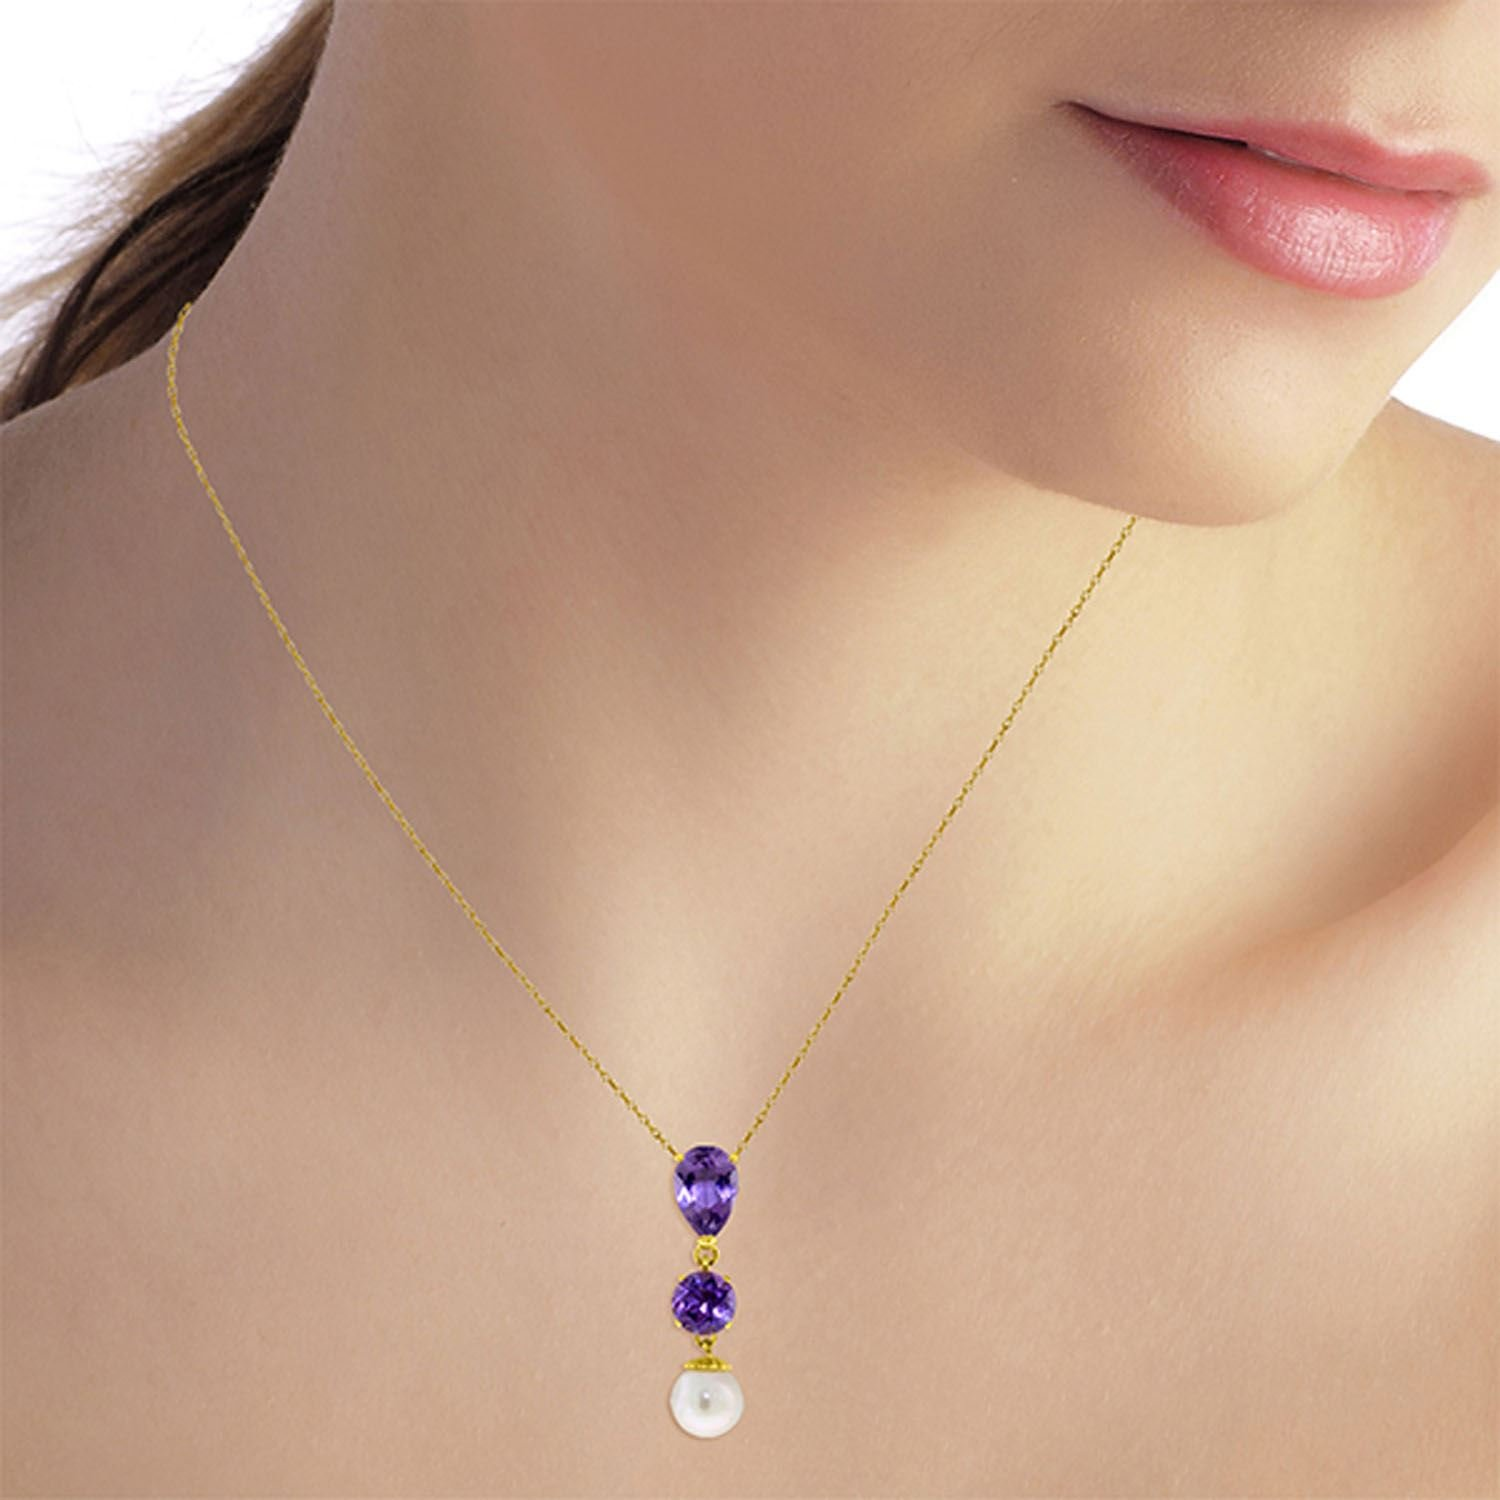 ALARRI 5.25 Carat 14K Solid Gold Necklace Purple Amethyst Pearl with 22 Inch Chain Length